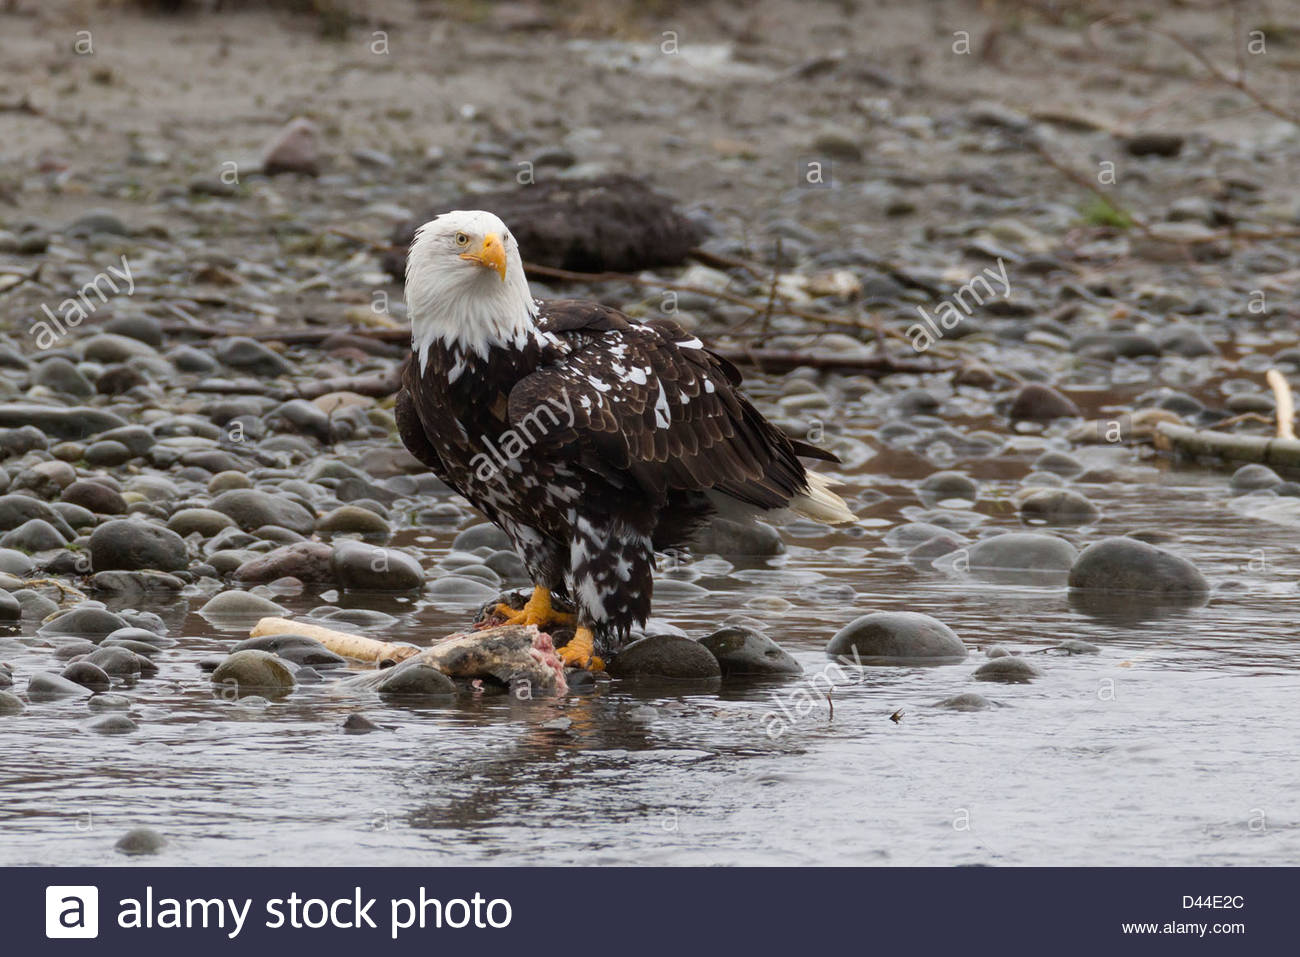 An adult bald eagle (Haliaeetus leucocephalus) with a rare pigment disorder known as Leucism feeds in Whatcom County, - Stock Image